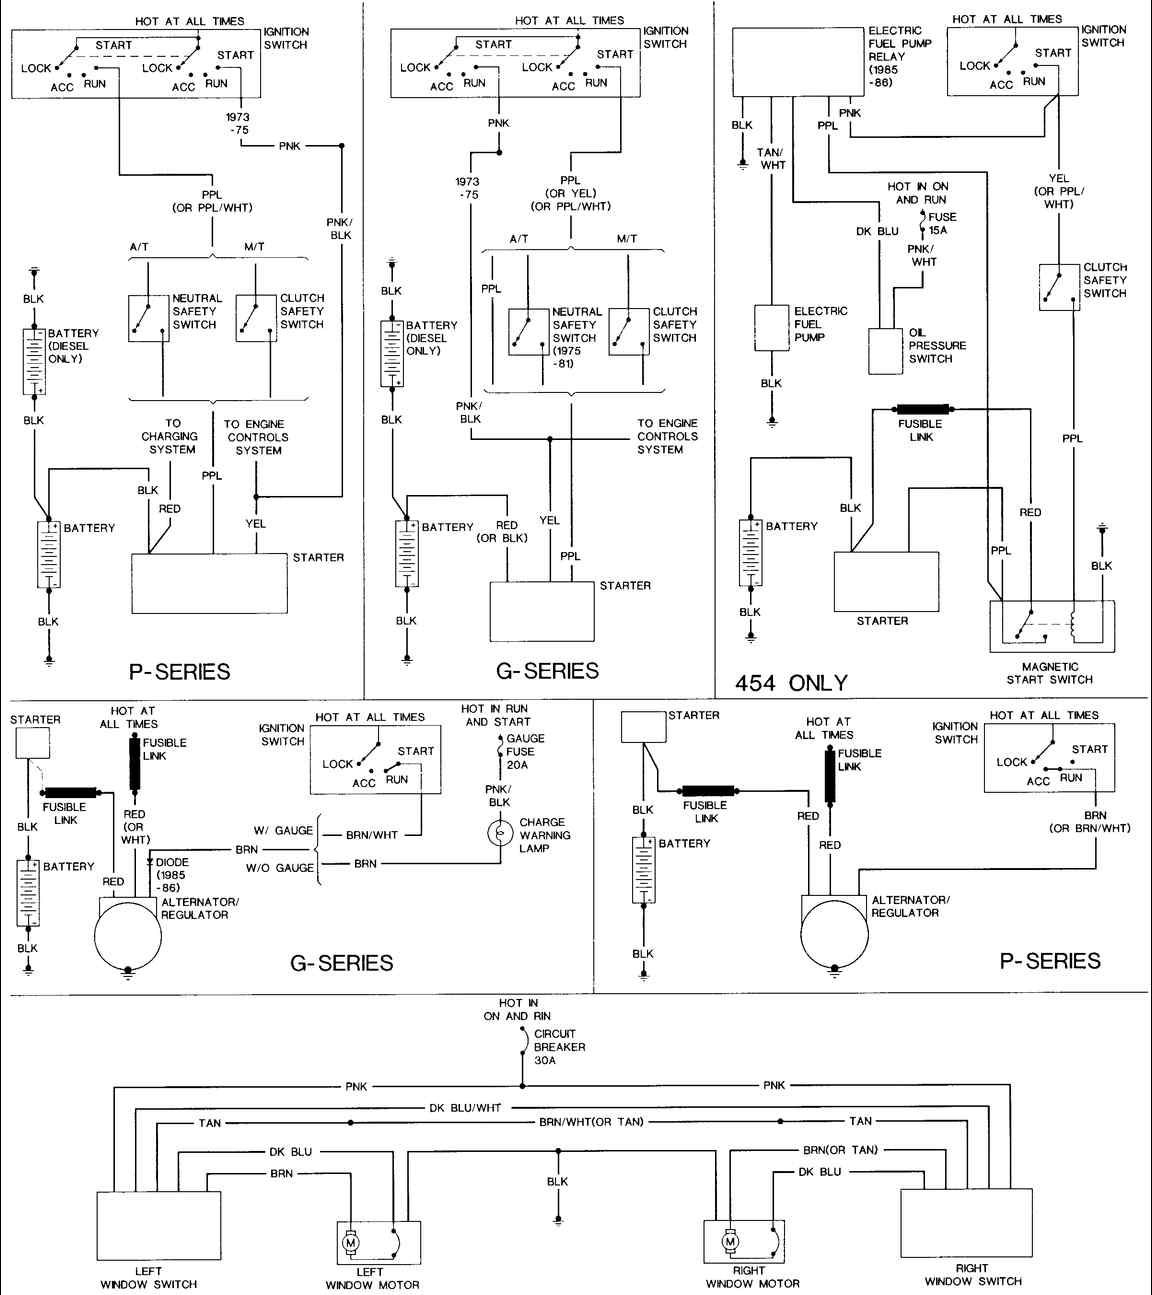 1989 Chevy S10 Blazer Wiring Diagram Steering | Wiring ... on 94 toyota camry wiring diagram, 94 chevy s10 horn, 94 chevy s10 exhaust, 1998 chevy 1500 wiring diagram, 94 chevy 1500 350 engine diagram, 1992 chevy cavalier wiring diagram, 94 chevy s10 seats, 1988 chevy 1500 wiring diagram, 94 chevy s10 wiper motor, 94 s10 fuel pump wiring diagram, 1999 chevy blazer vacuum line diagram, 94 chevy s10 wheels, 94 camaro wiring diagram, 95 chevy lumina wiring diagram, 94 ford f350 wiring diagram, trans am wiring diagram, 94 s10 radio wiring diagram, 94 nissan maxima wiring diagram, chevy s10 transmission diagram, 94 ford bronco wiring diagram,